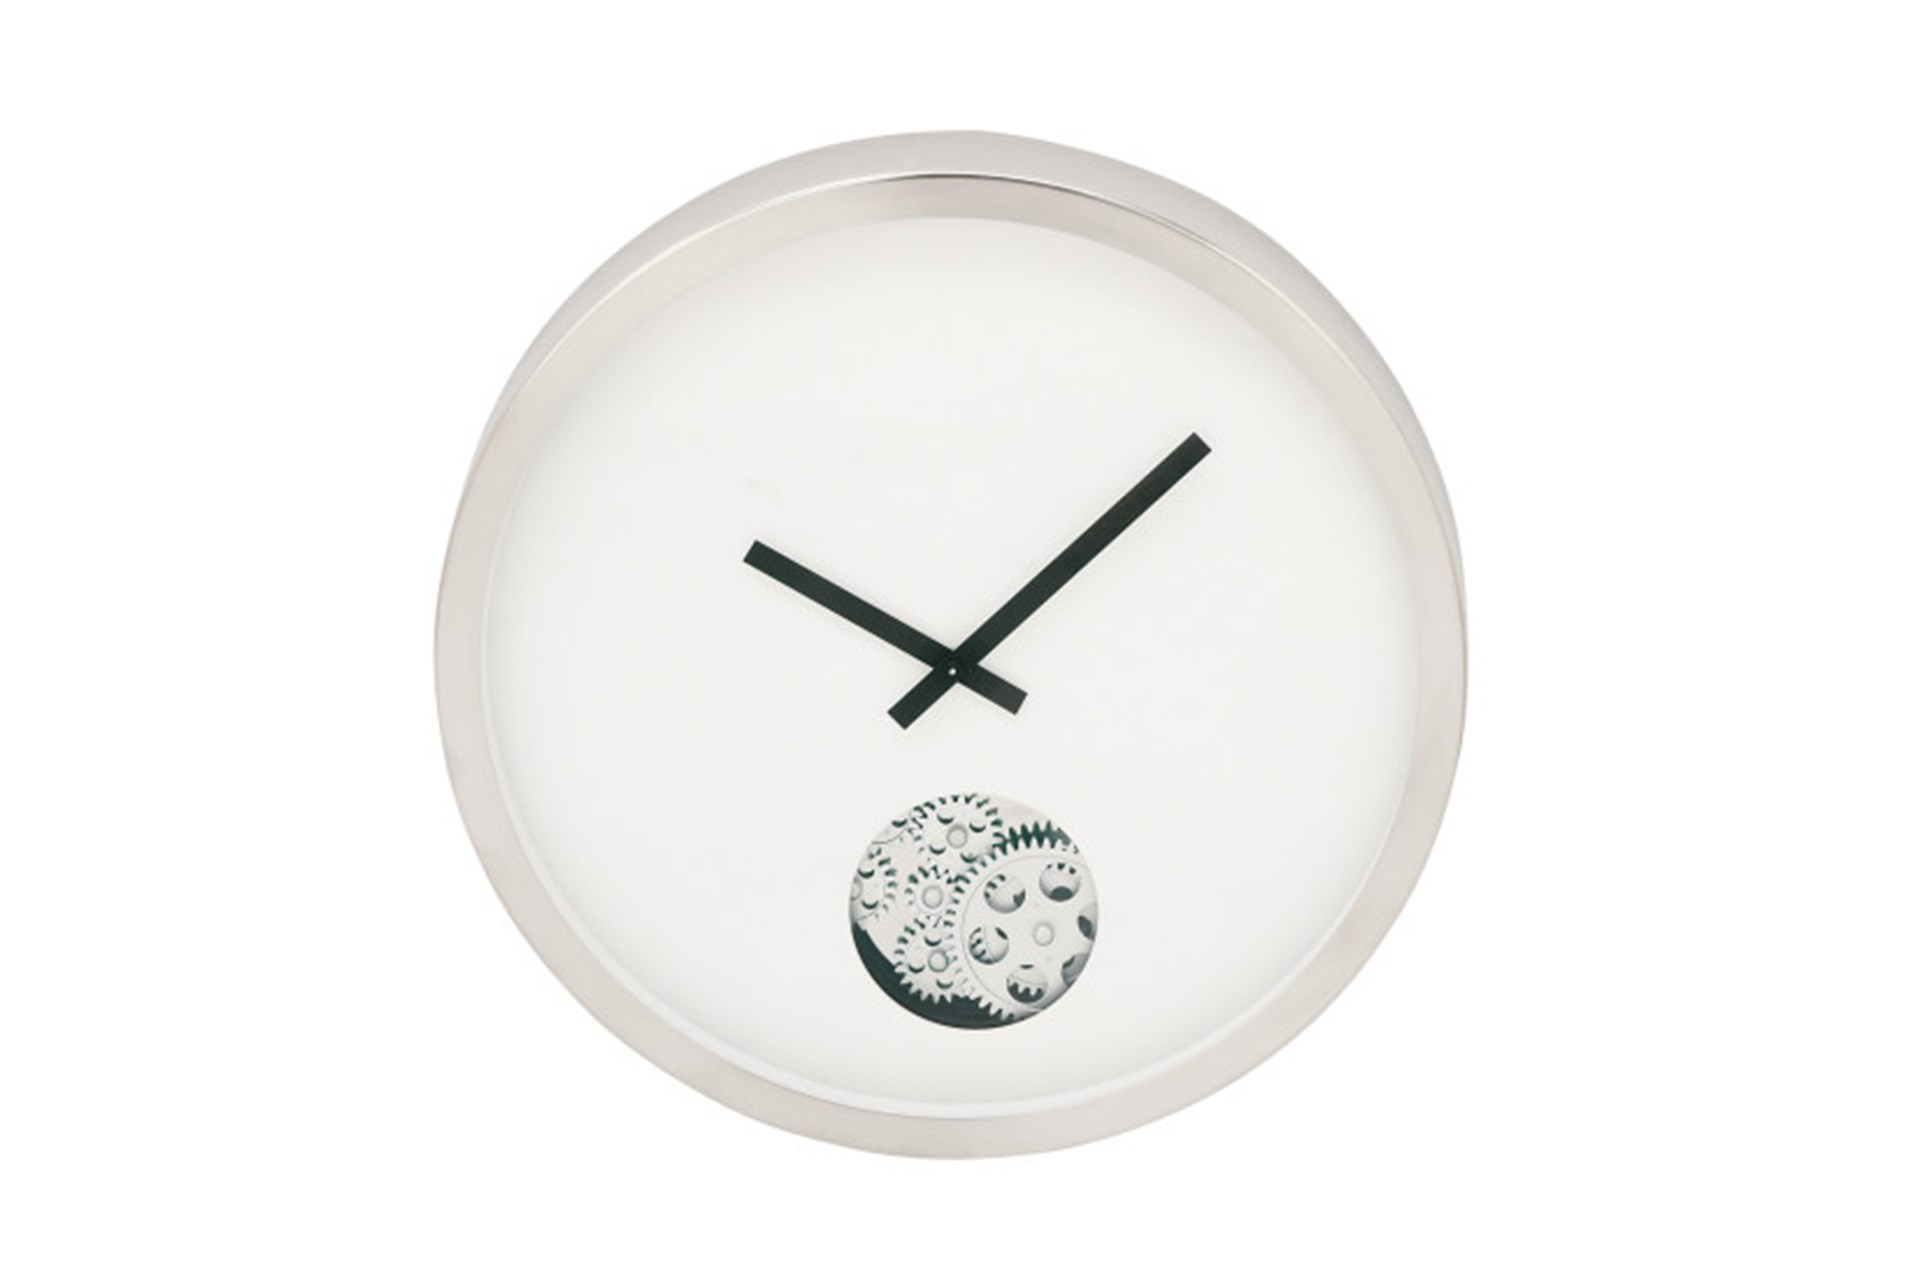 Steel Small Gear Wall Clock Qty 1 Has Been Successfully Added To Your Cart